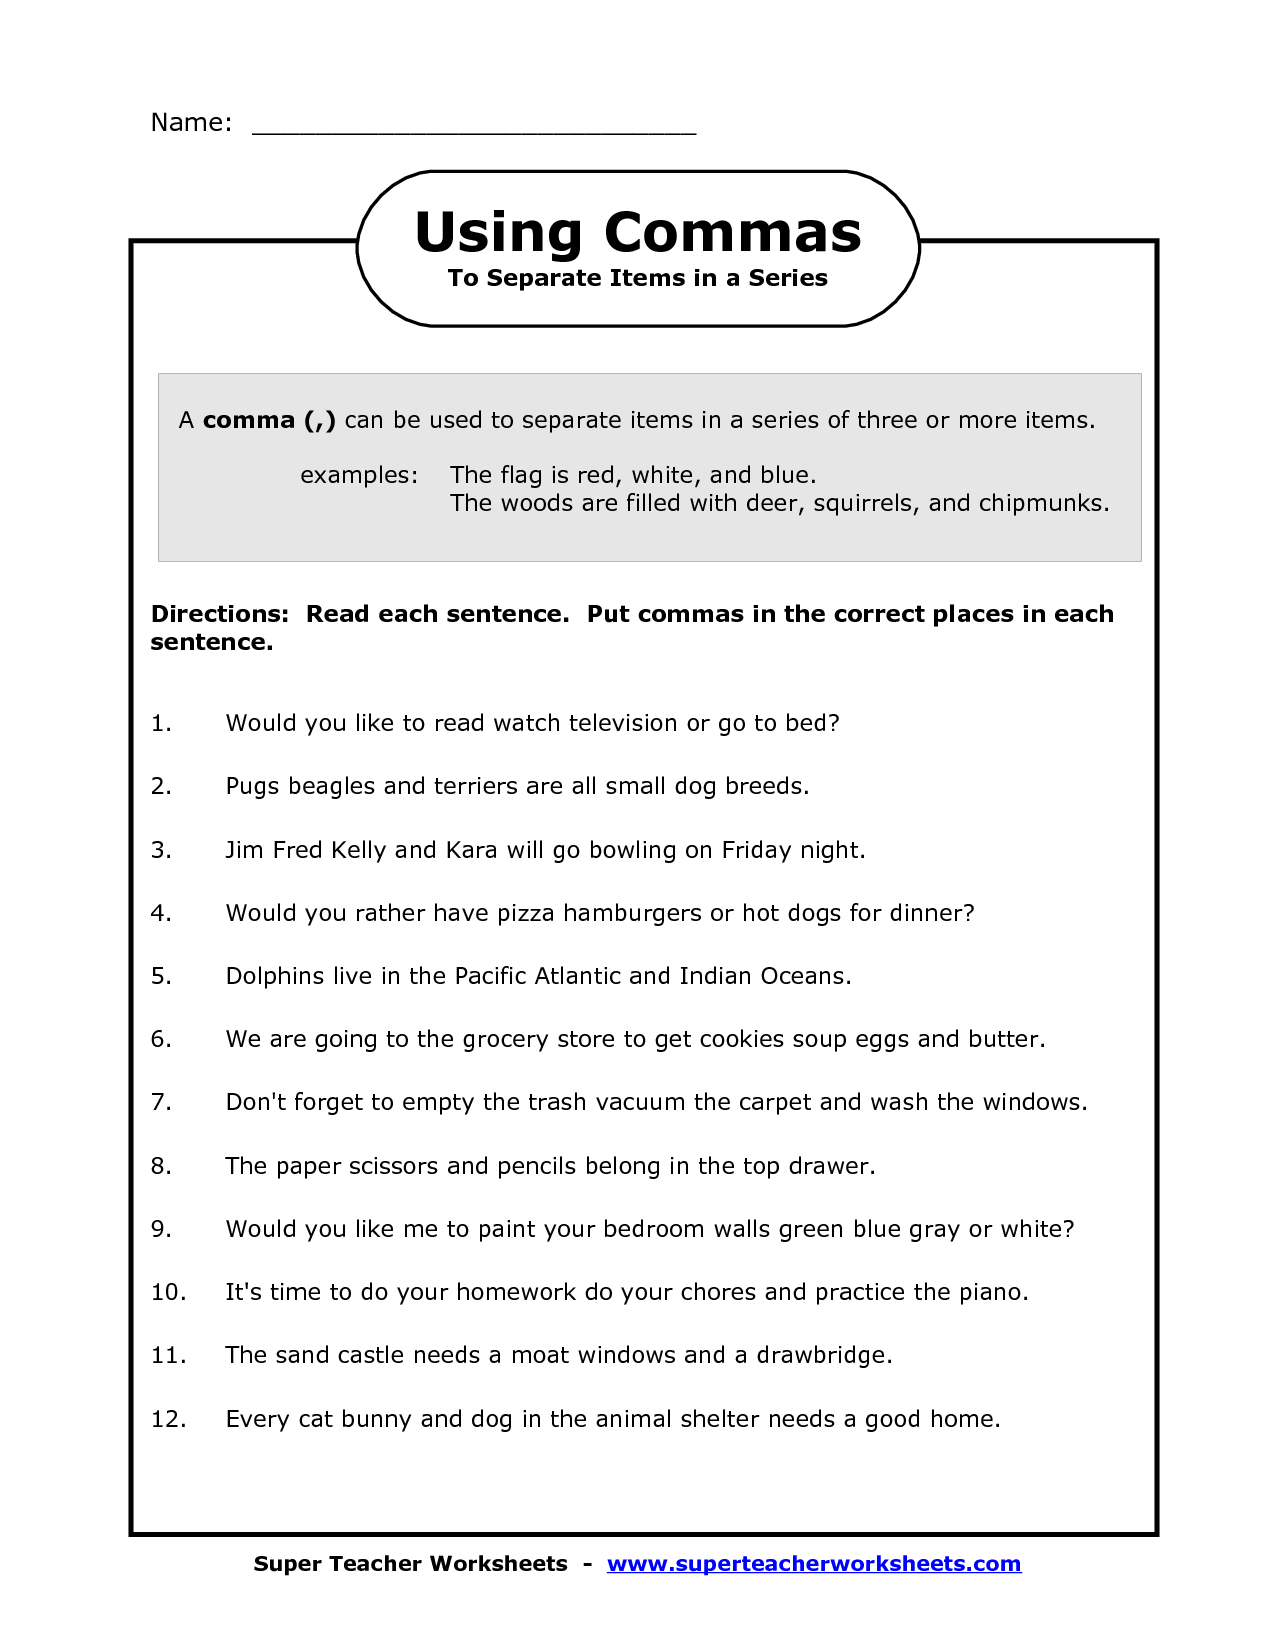 comma in a series worksheets image – Activity Series Worksheet